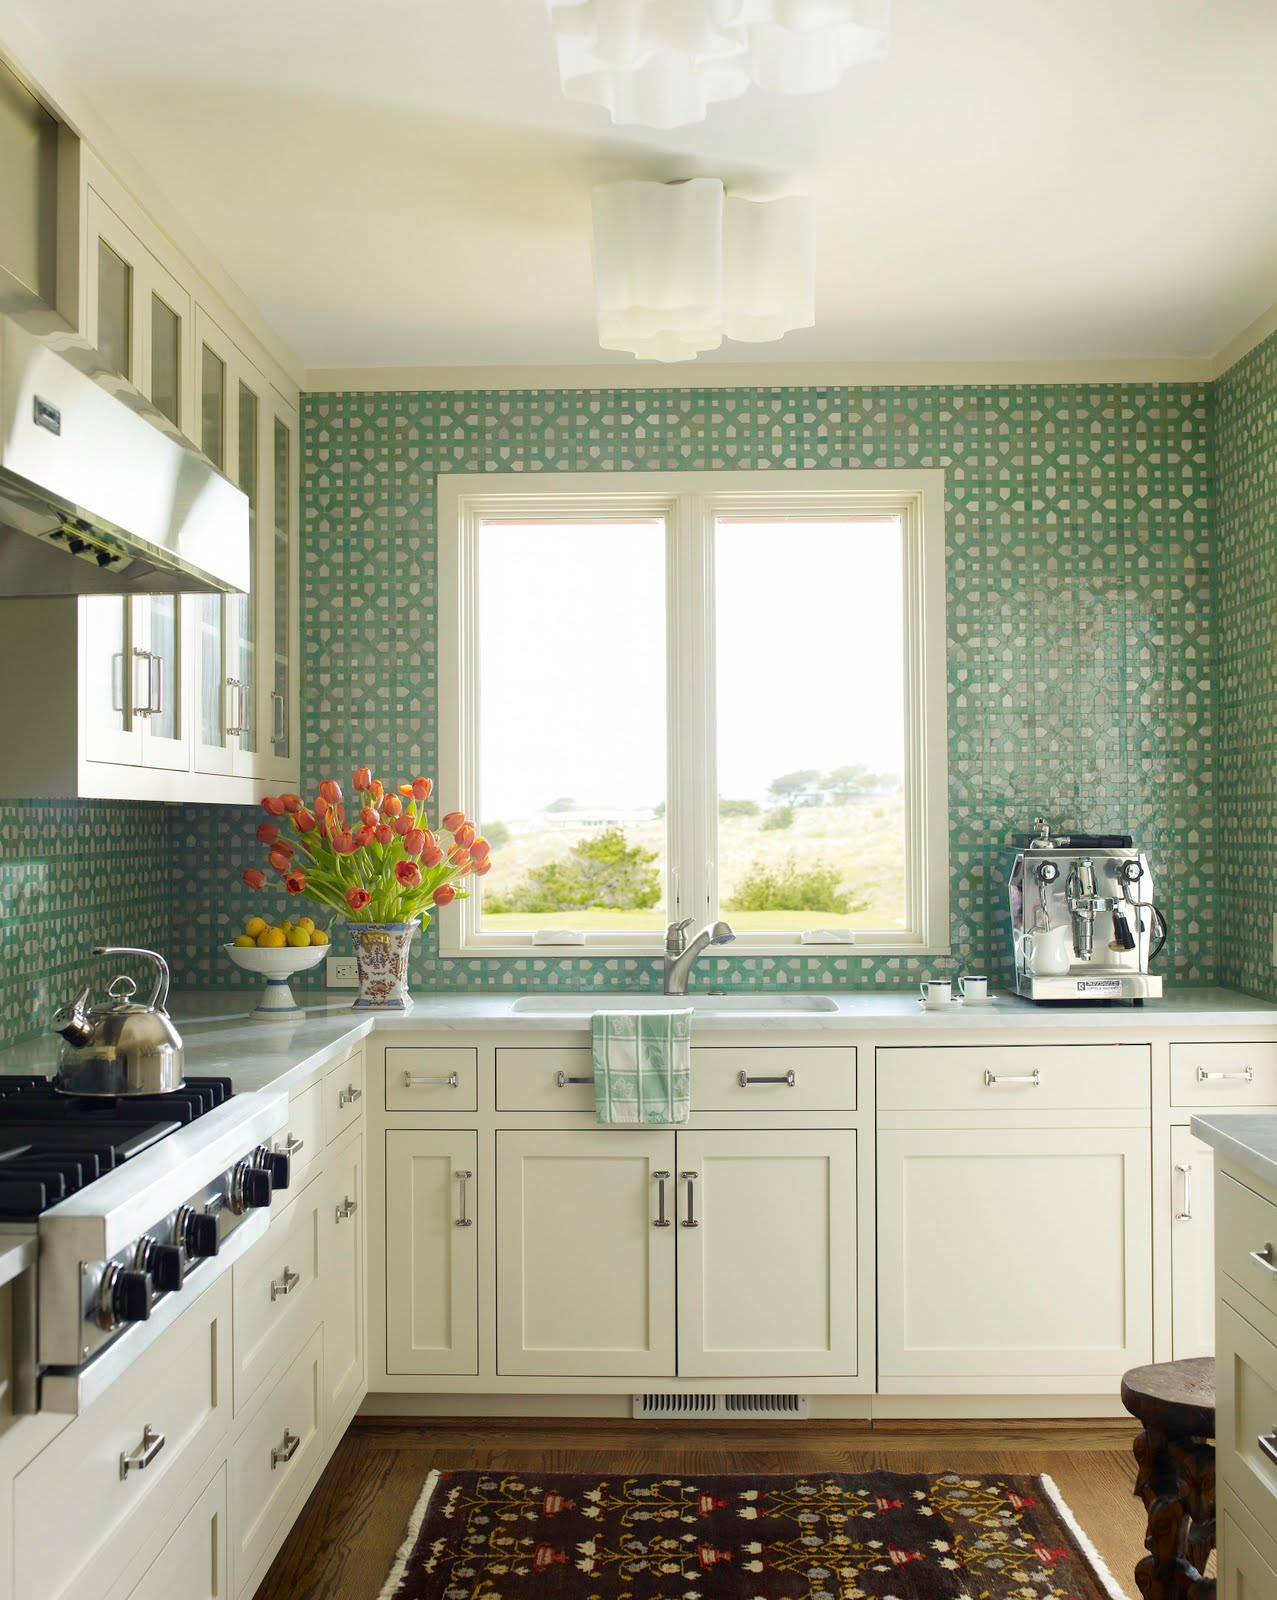 kitchen with aqua mosaic tiles from counter to ceiling backsplash